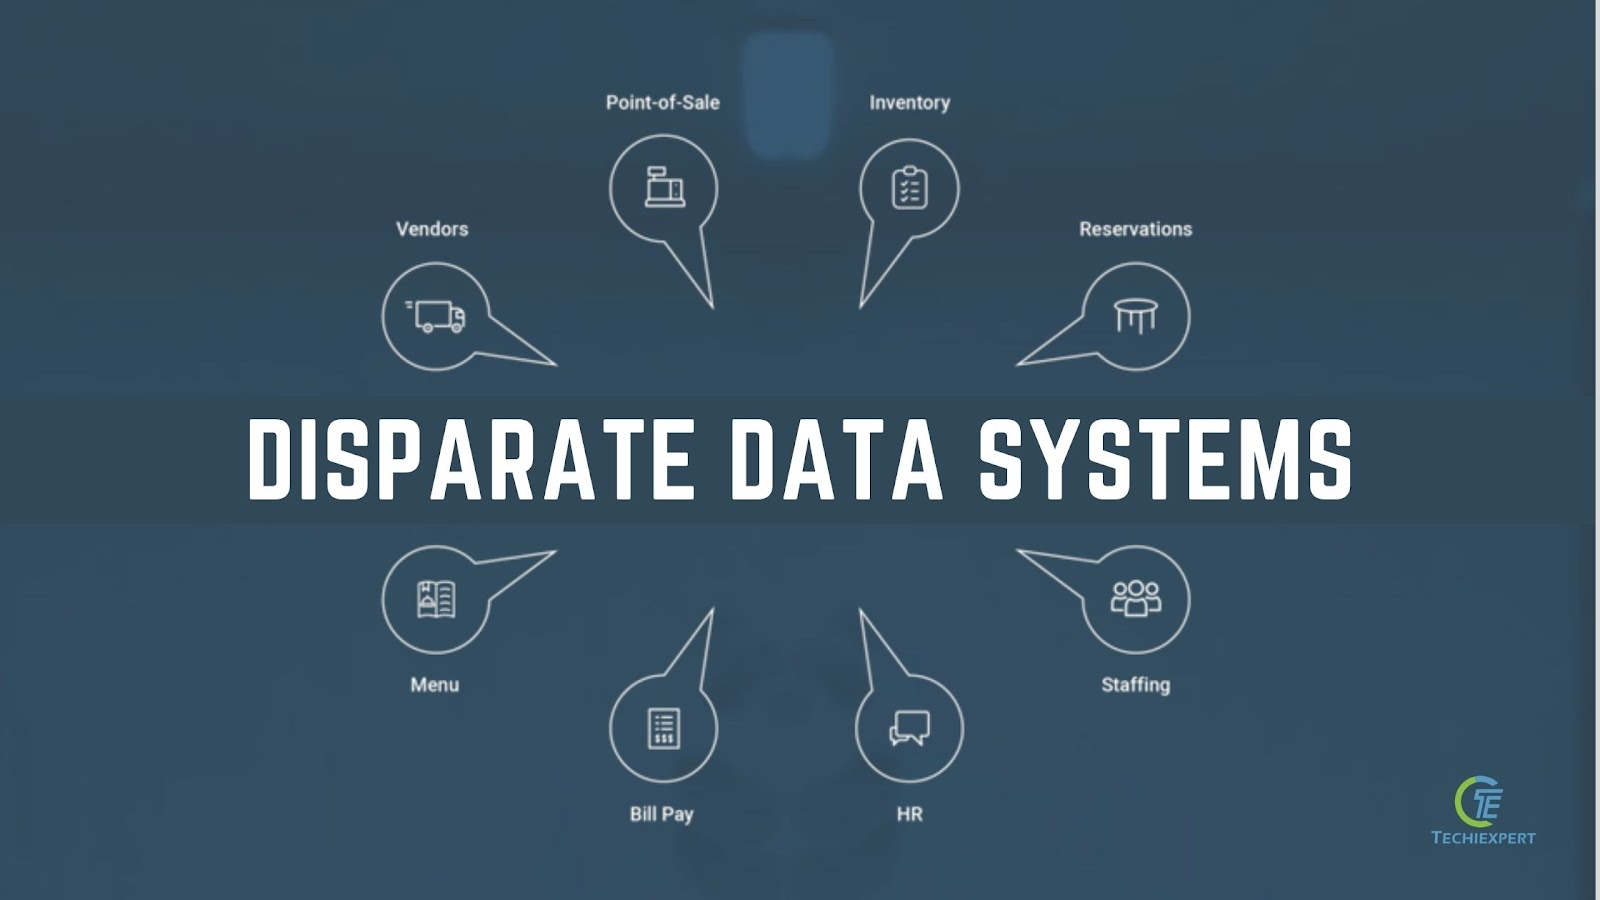 Disparate data systems